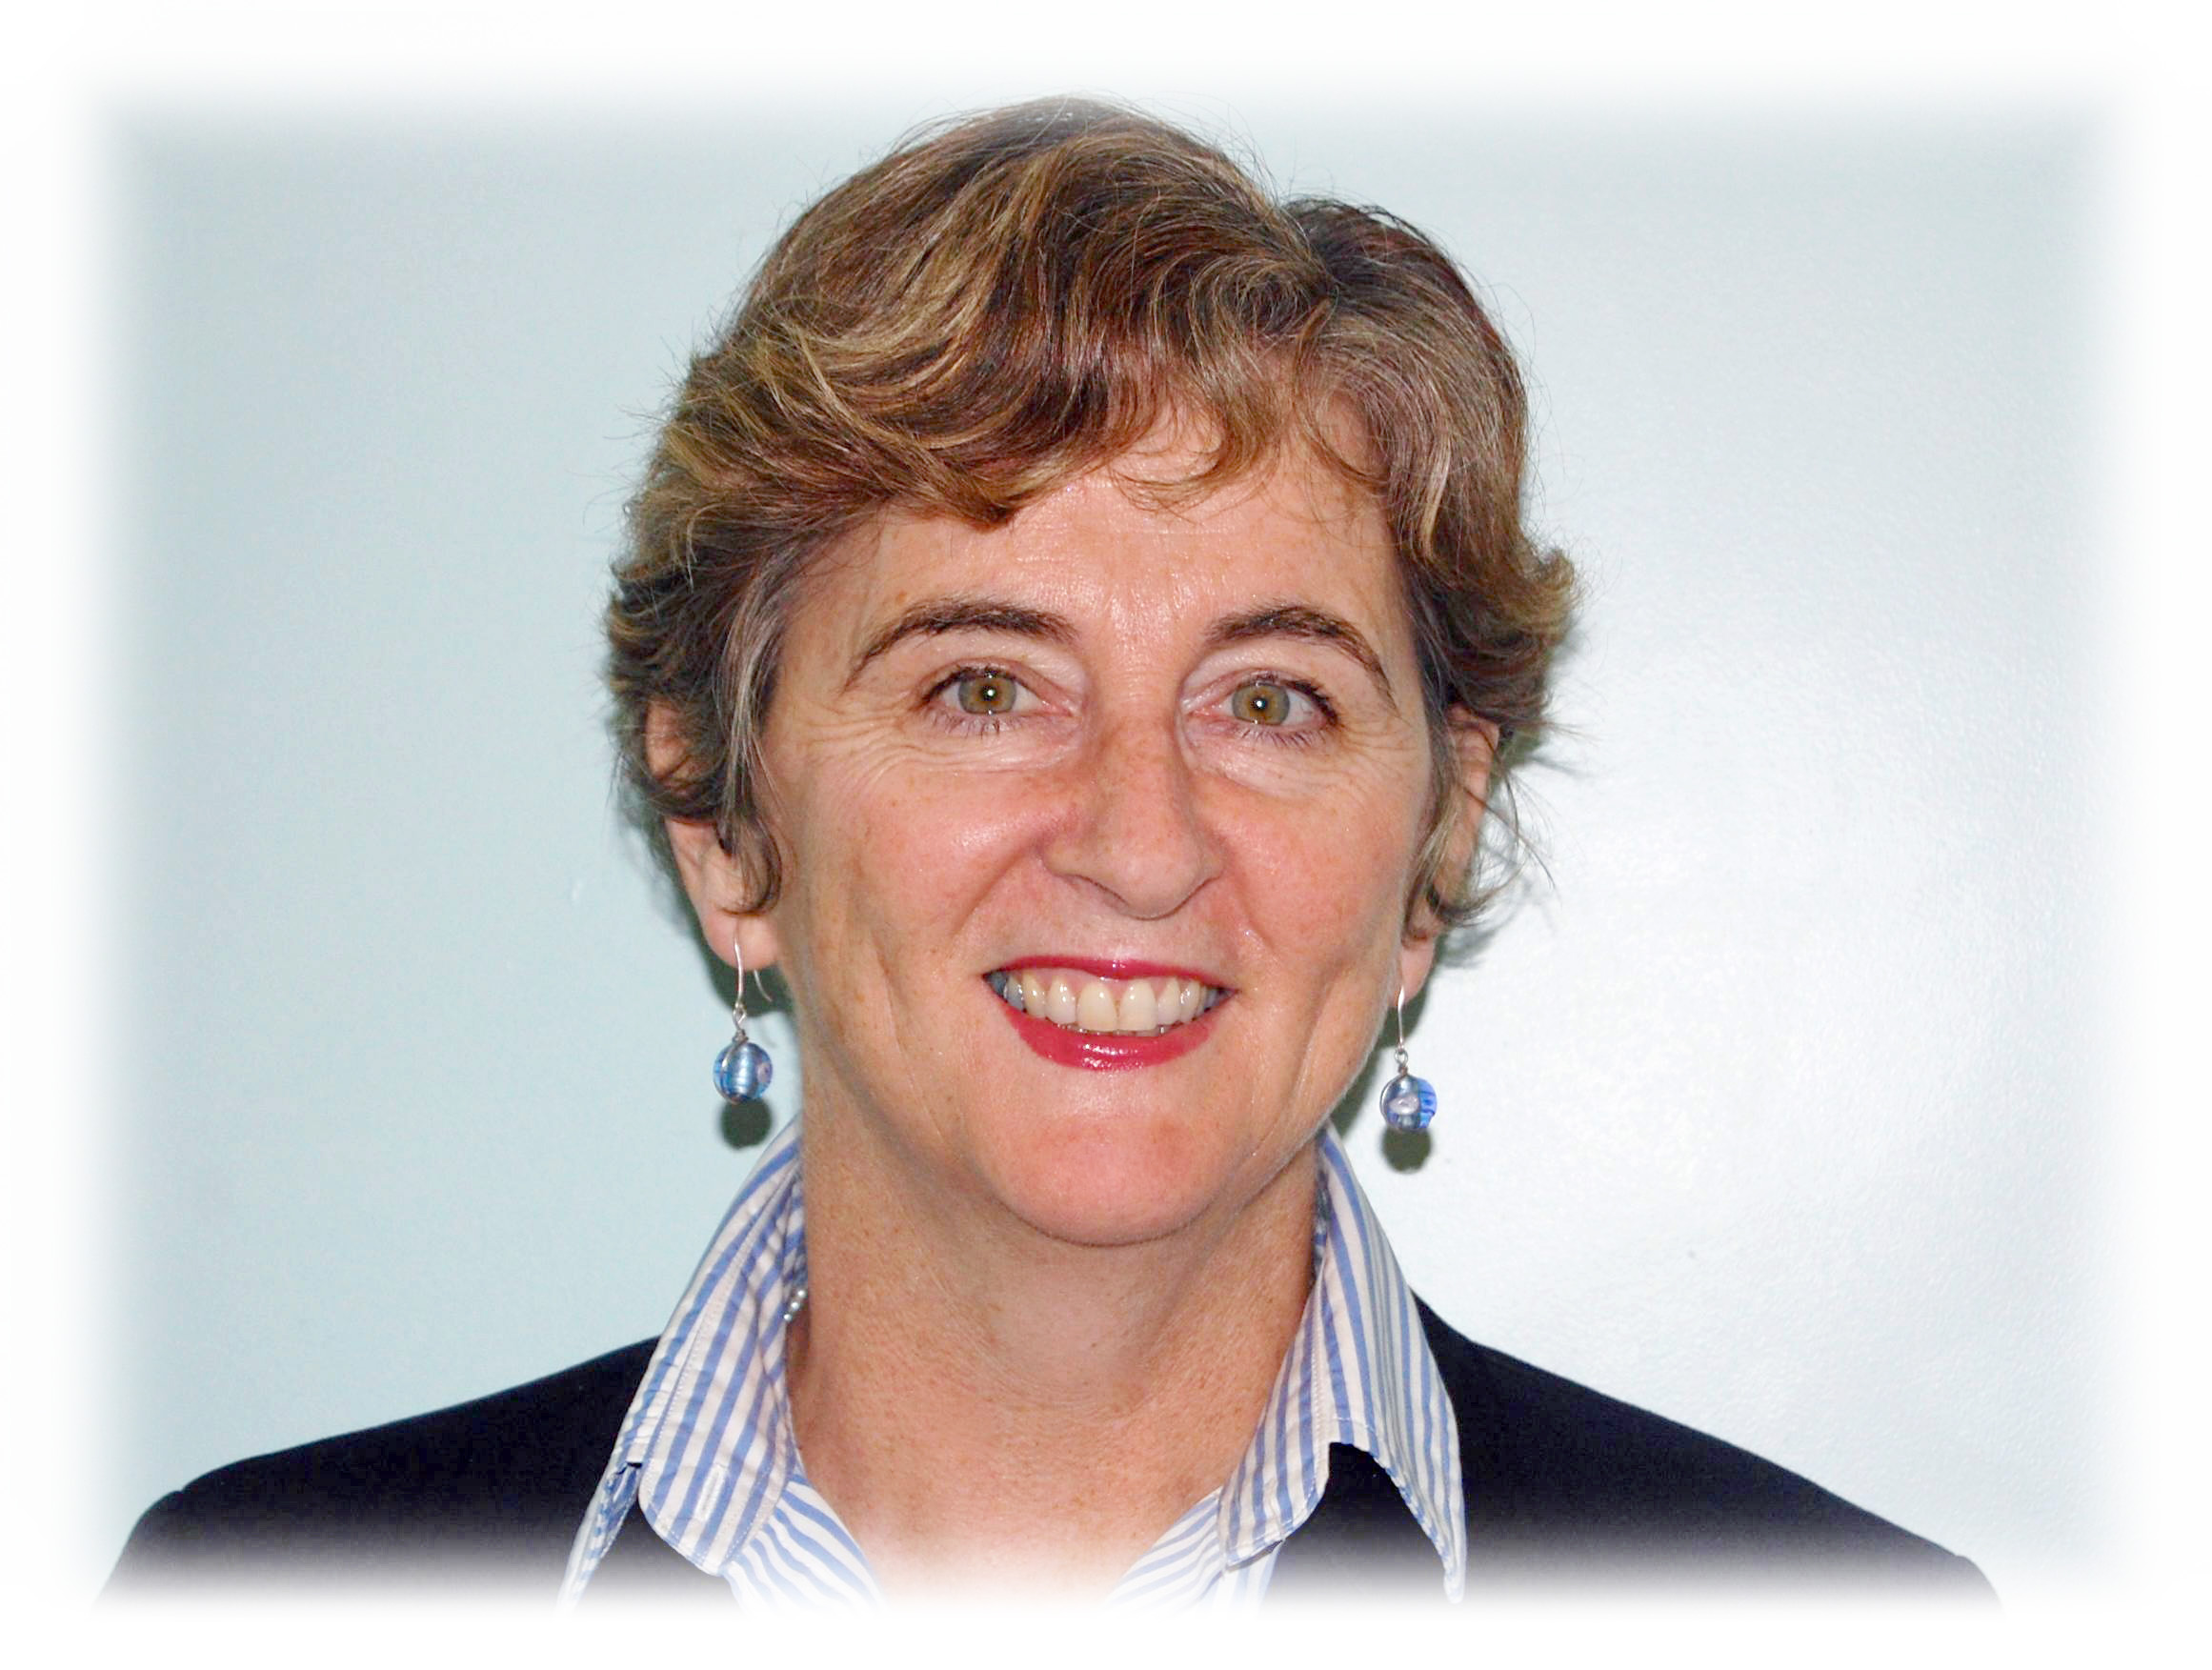 Susan Brumby - Director of the National Centre for Farmer Health